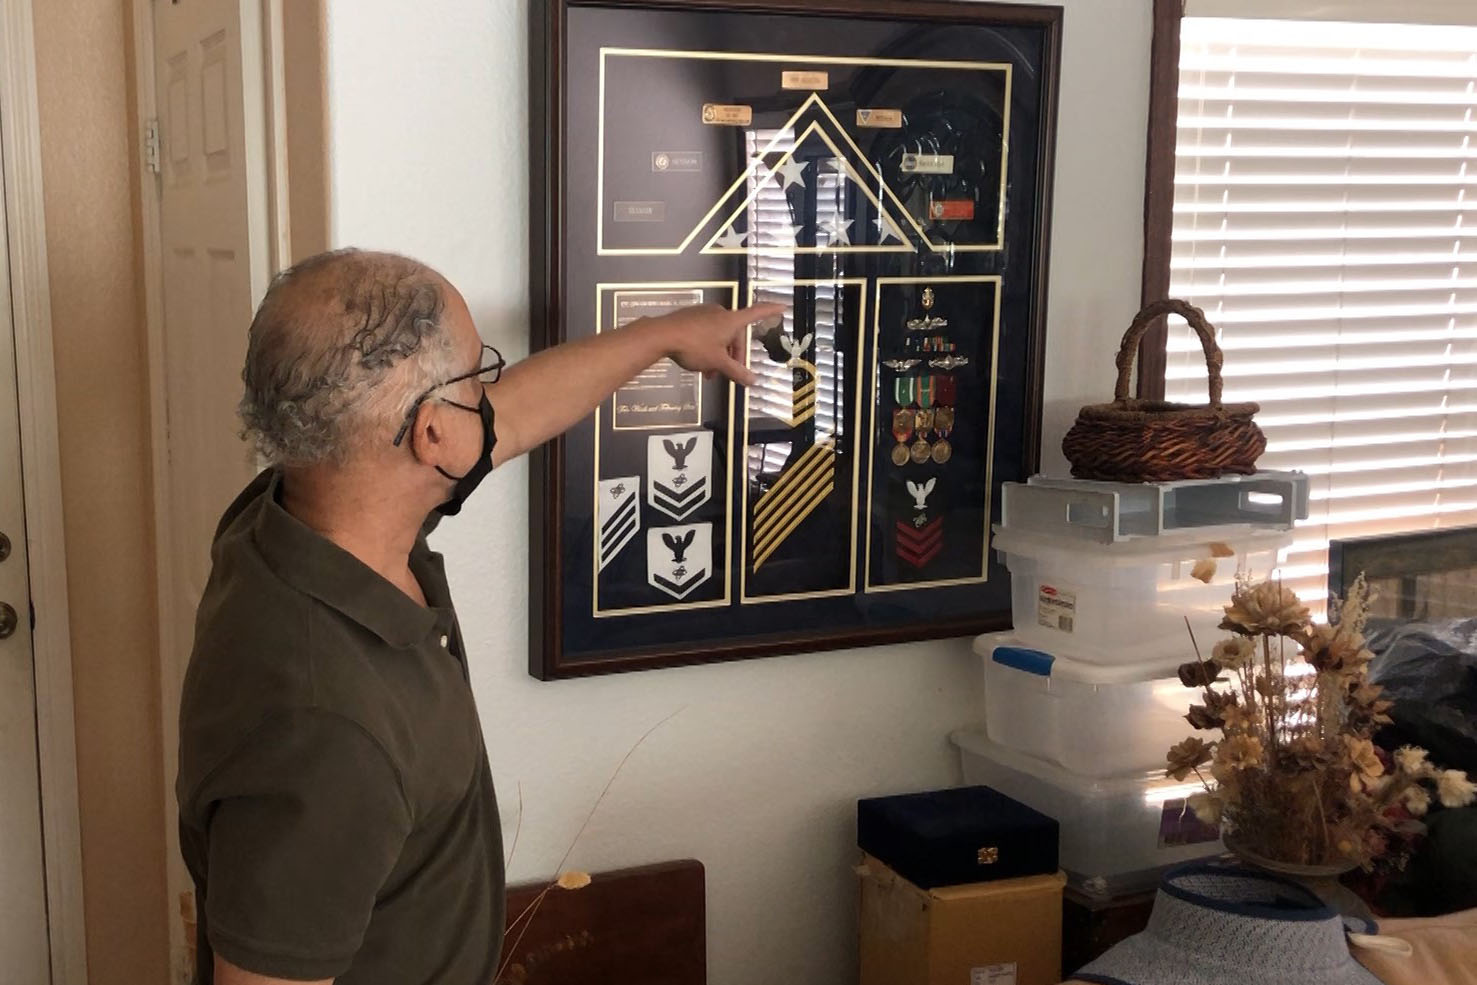 Caption: Veteran Marc Session points to some of his Navy mementos on display in his Chula Vista, California home., Credit: Steve Walsh / American Homefront